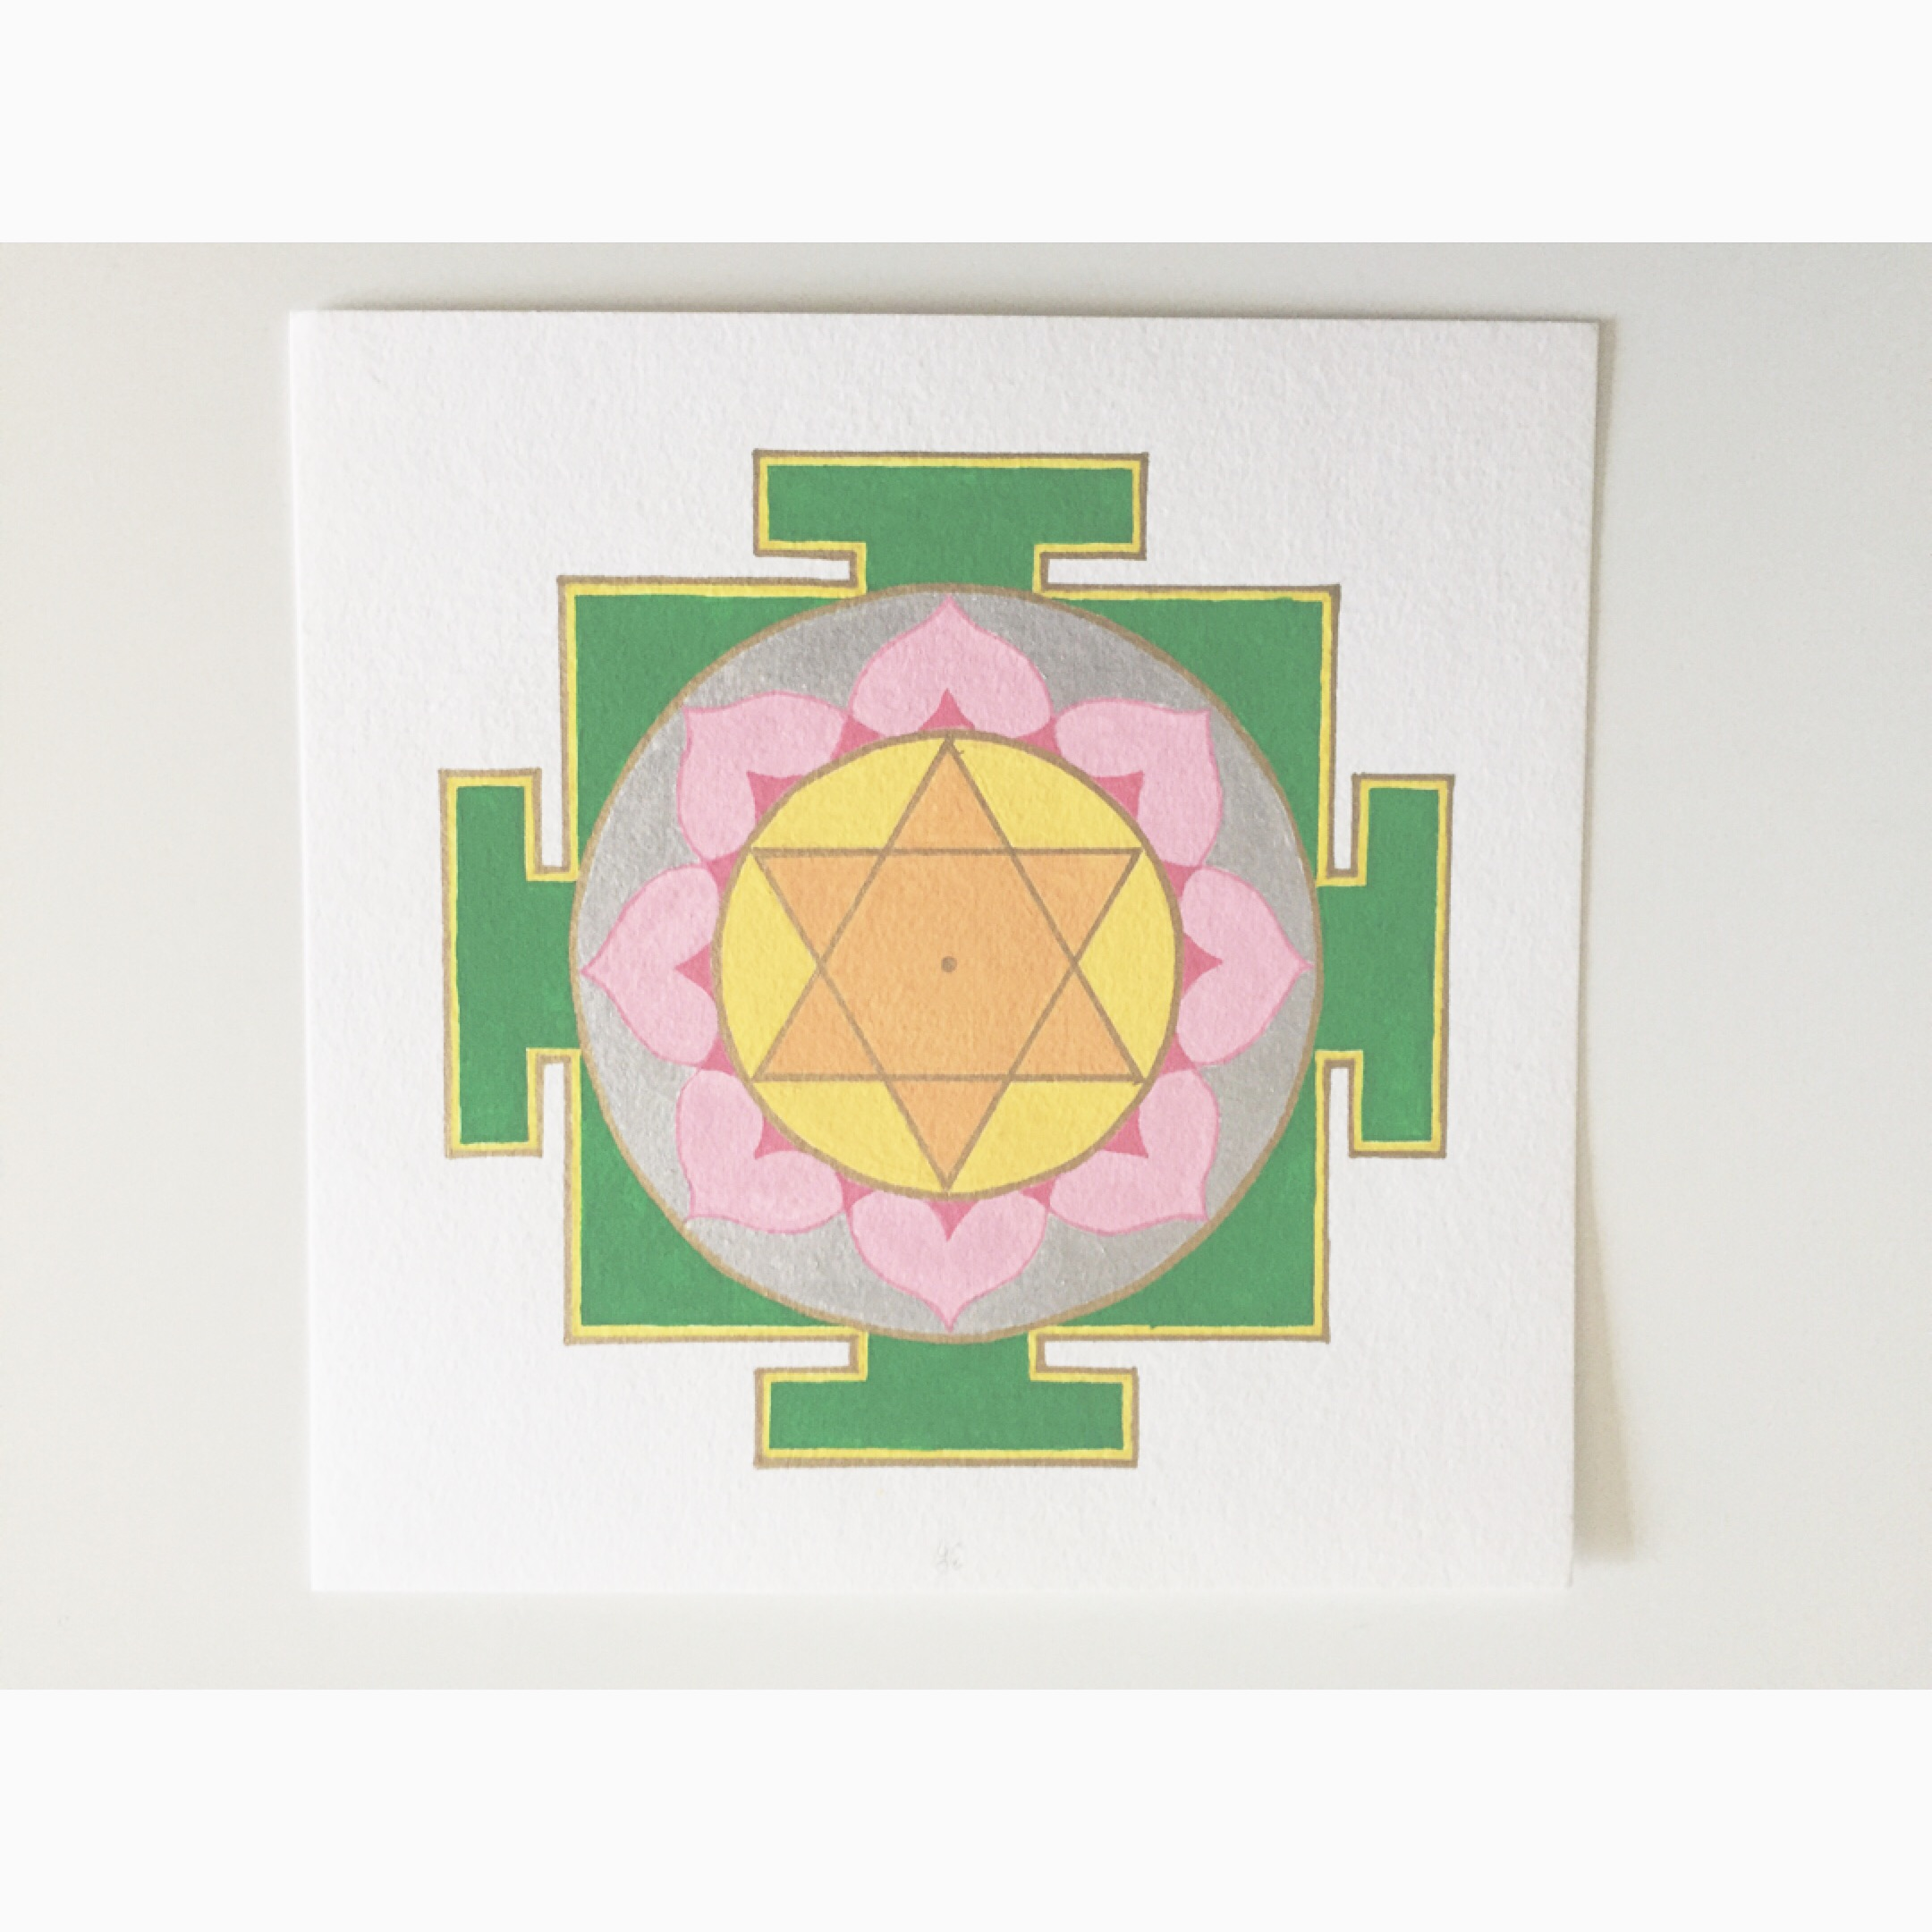 happy  #mantraMonday . I've been working on painting the goddess yantras. This one is Lakshmi, goddess of prosperity and wealth. Mantra: om hring laksmaye namaha om.   #mantra   #yantra   #mandala  #lakshmi   #vedic